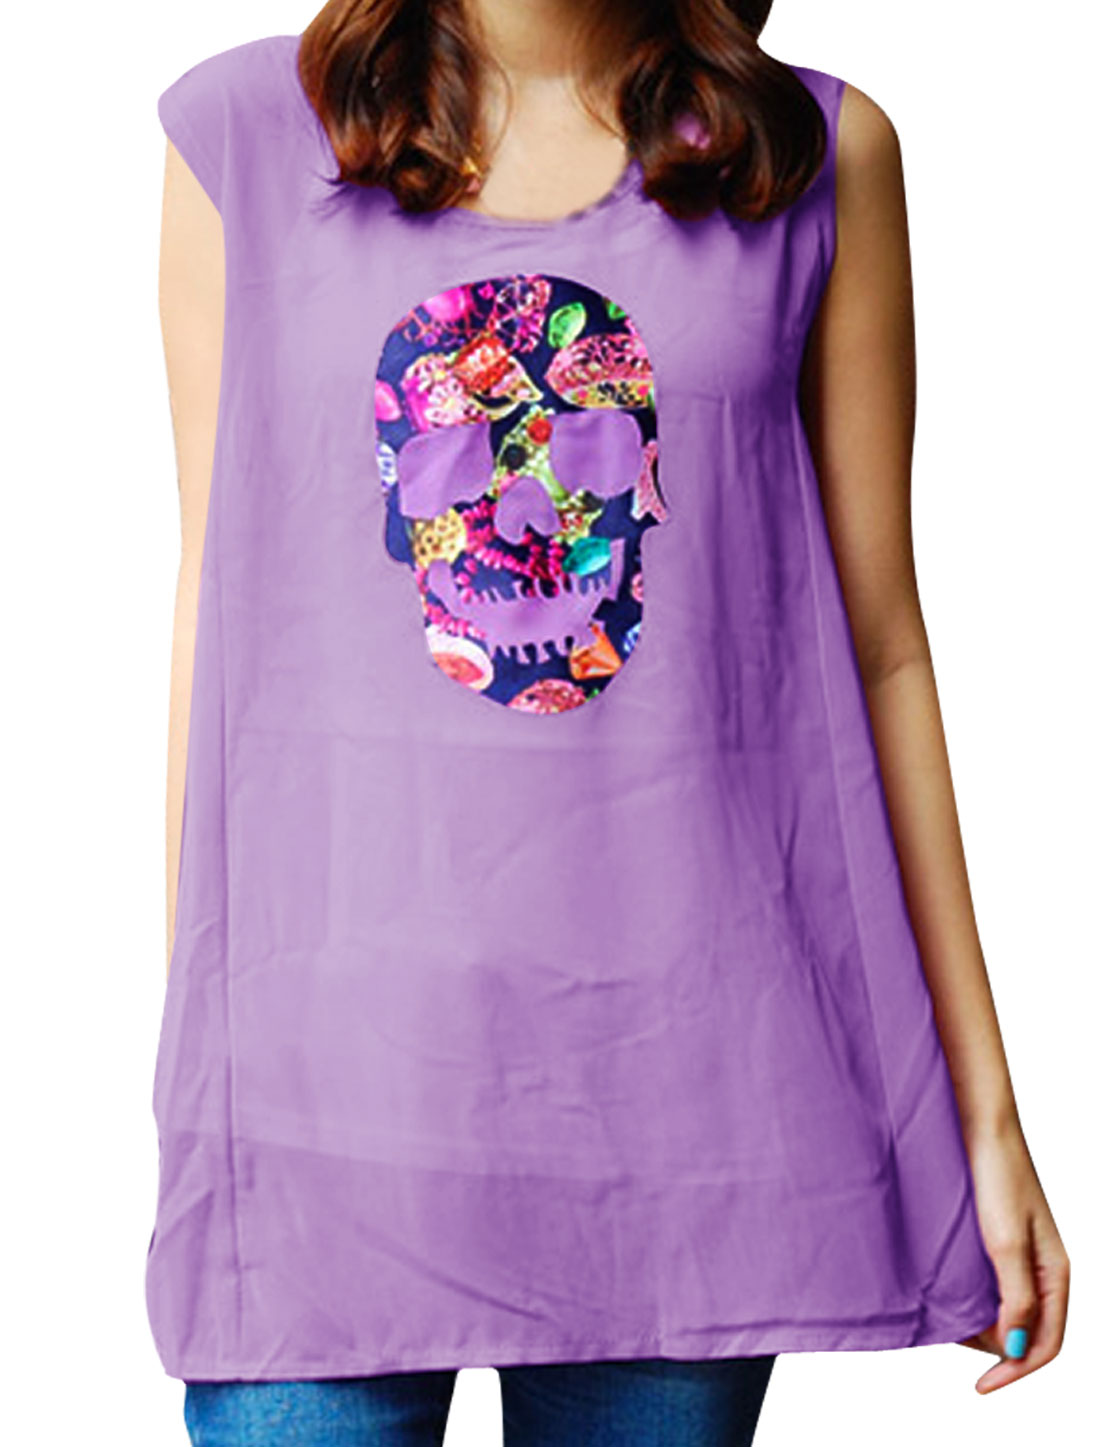 Ladies Skull Design Round Neck Chiffon Tunic Shirt Lavender S